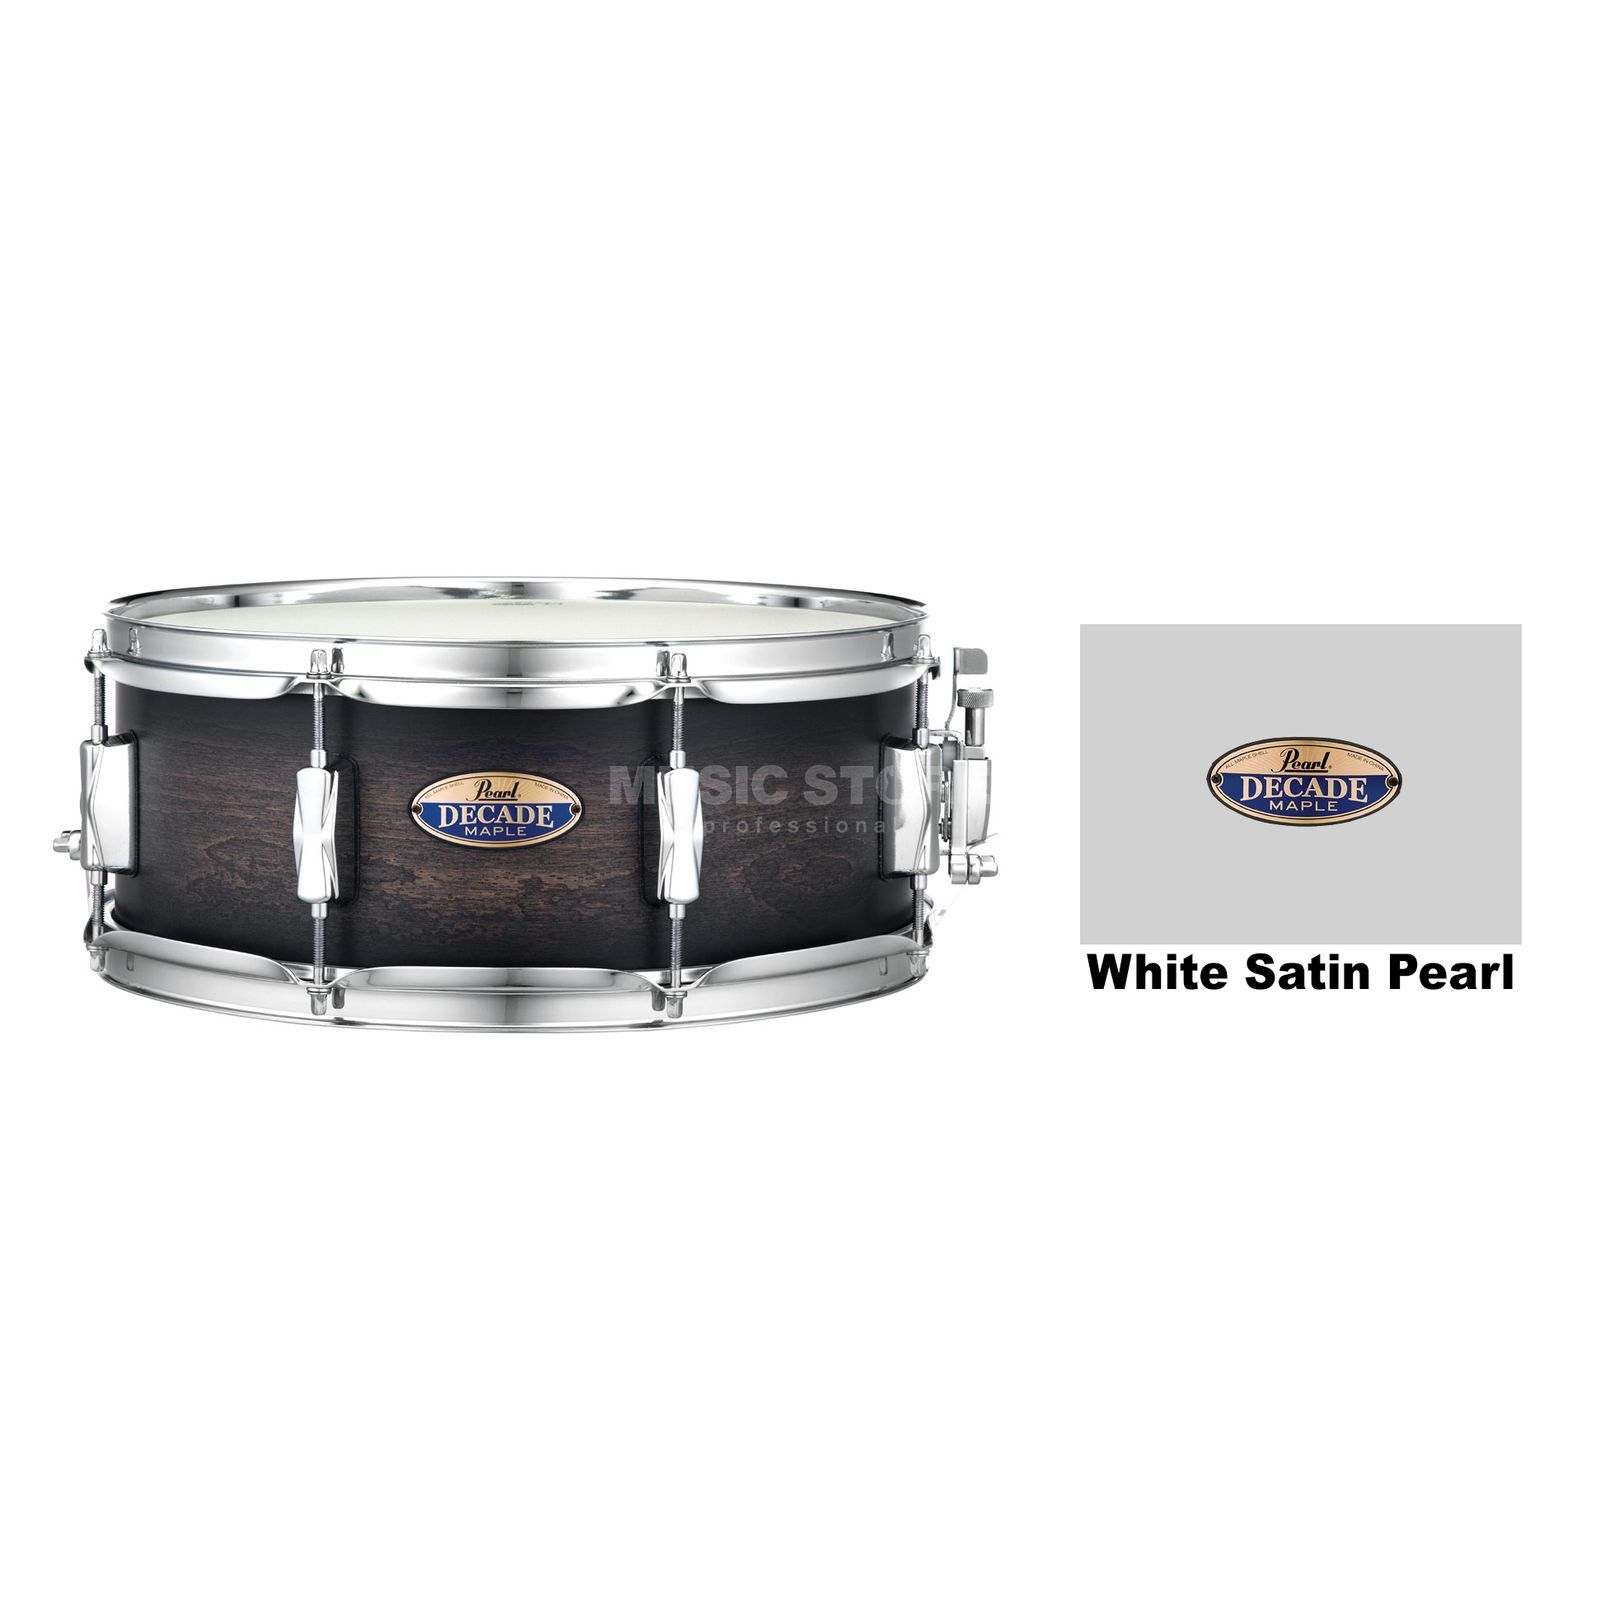 "Pearl Decade Maple Snare 14""x5,5"", White Satin Pearl Produktbild"